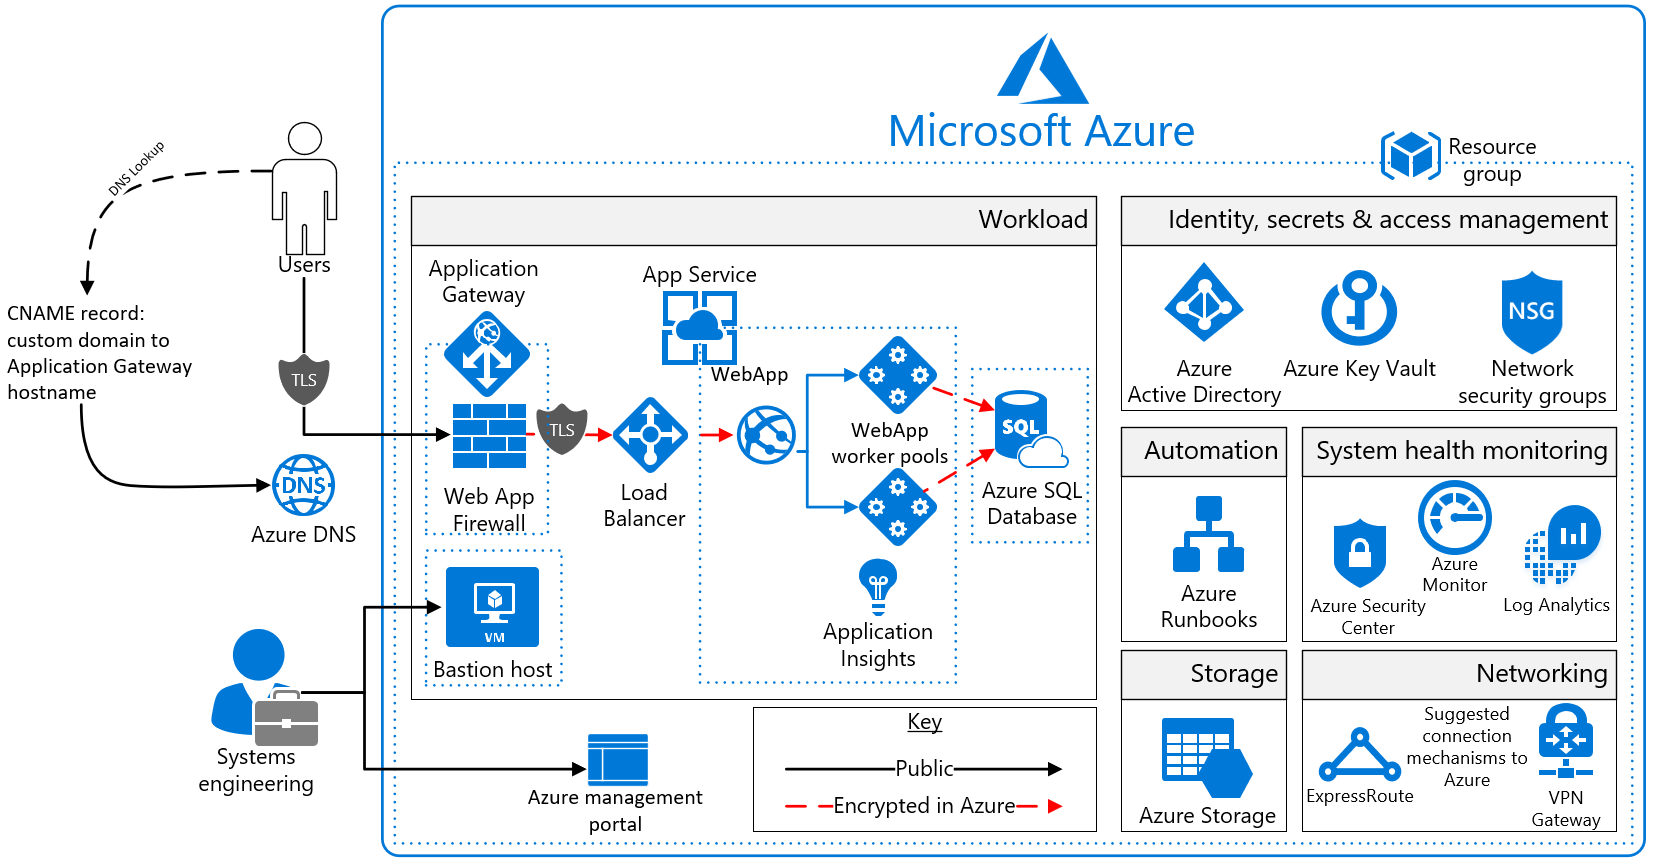 Azure security and compliance blueprint paas web application for paas web application for pci dss reference architecture diagram malvernweather Gallery